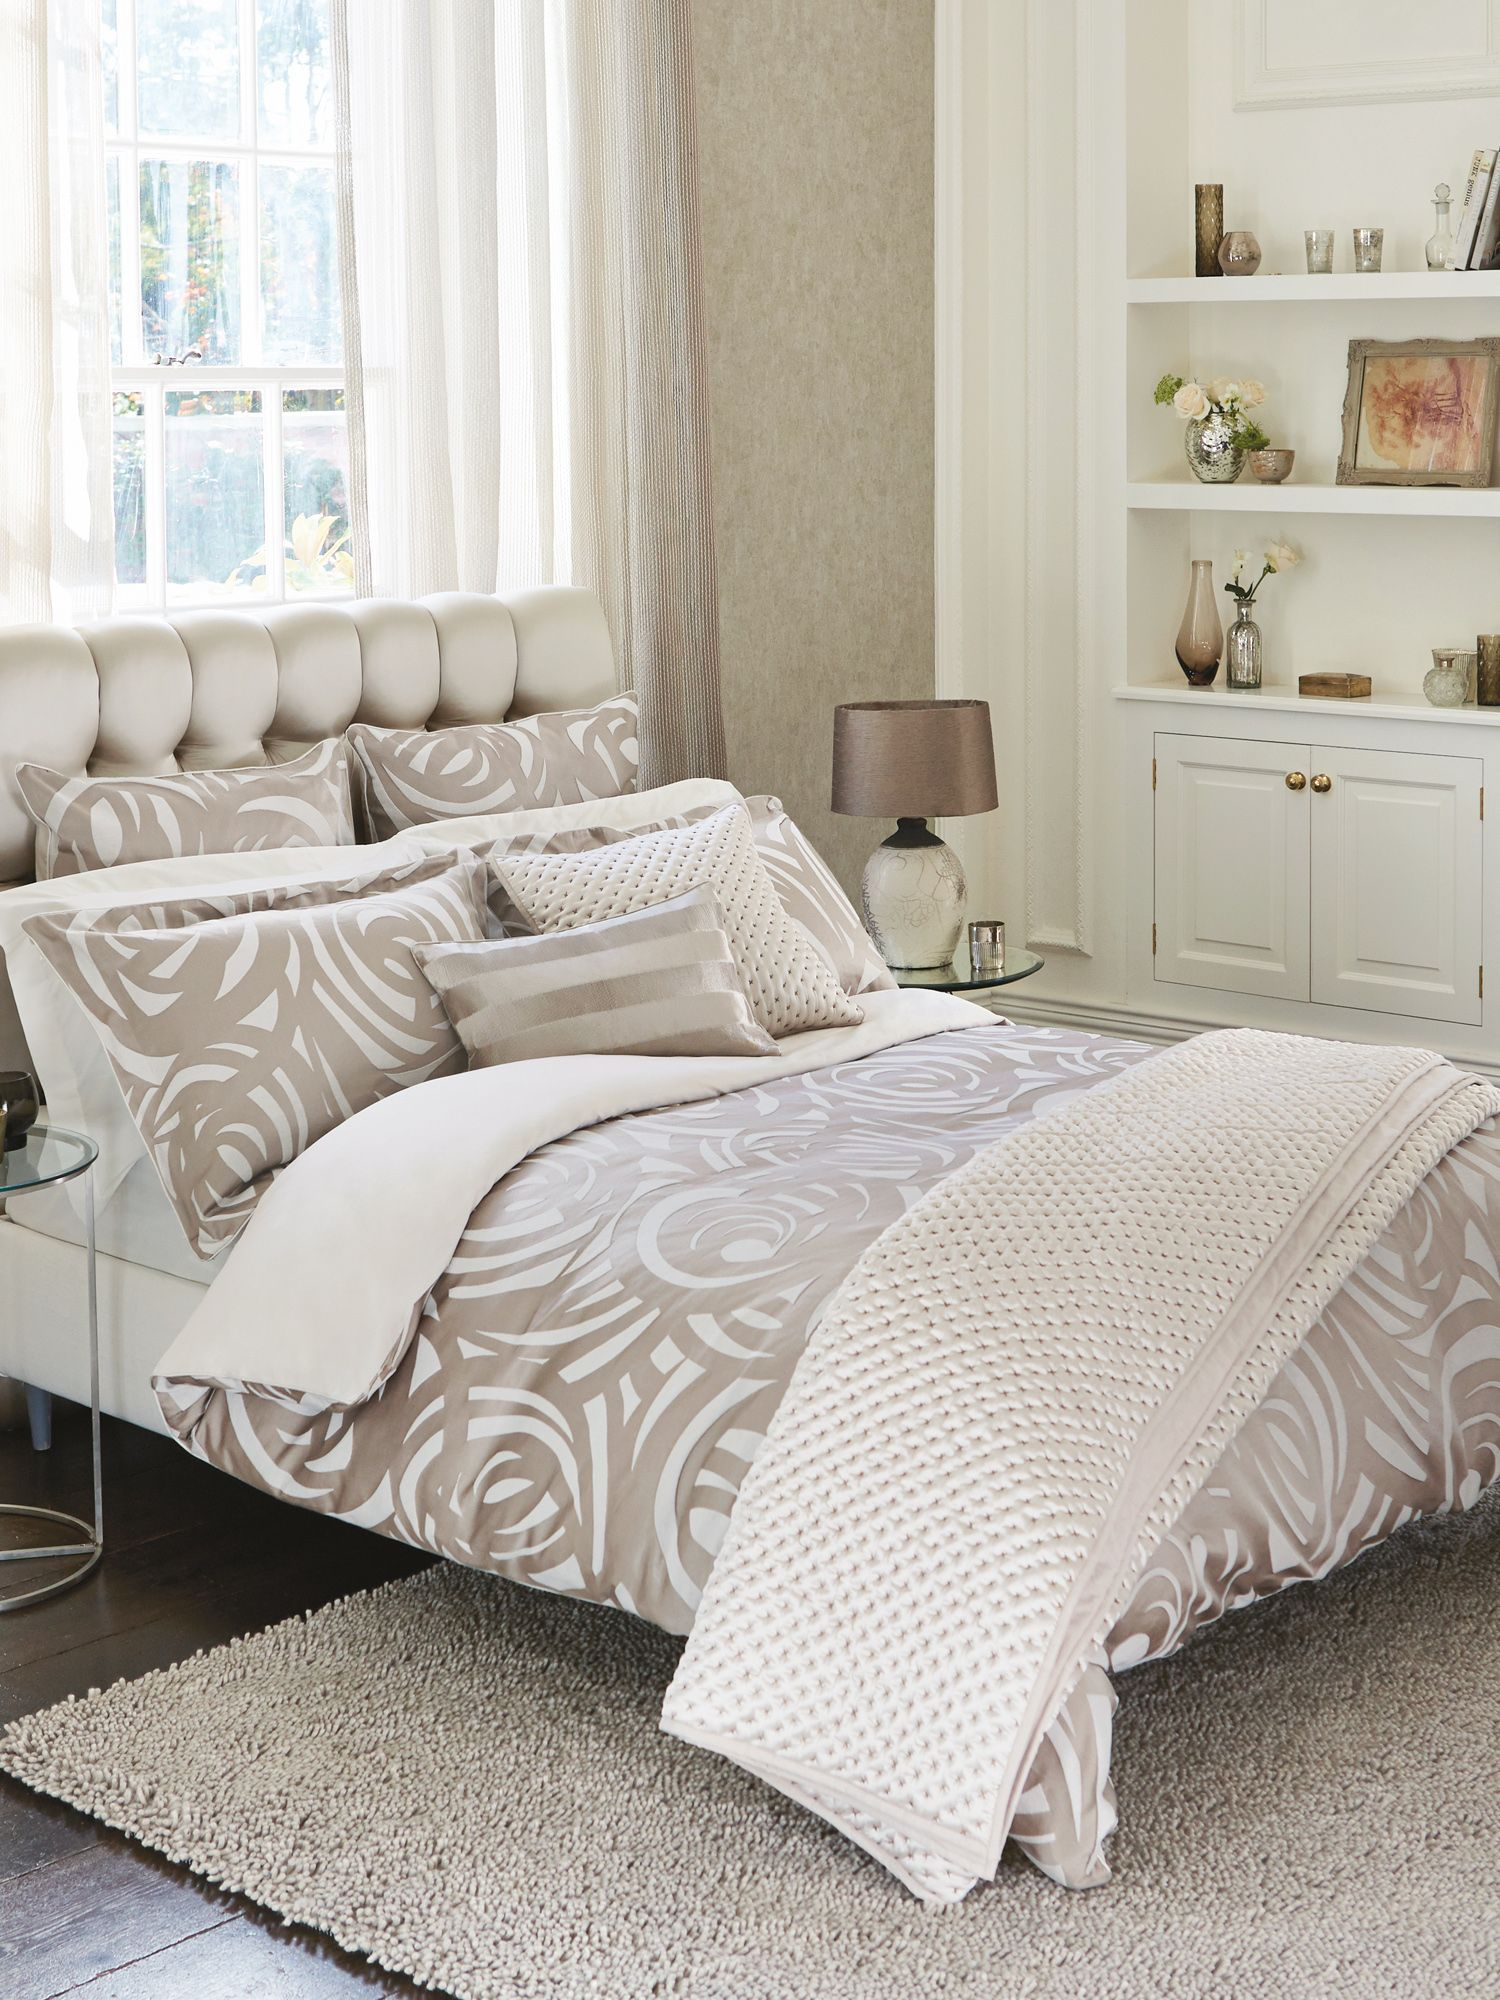 Momentum collection vortex bed linen